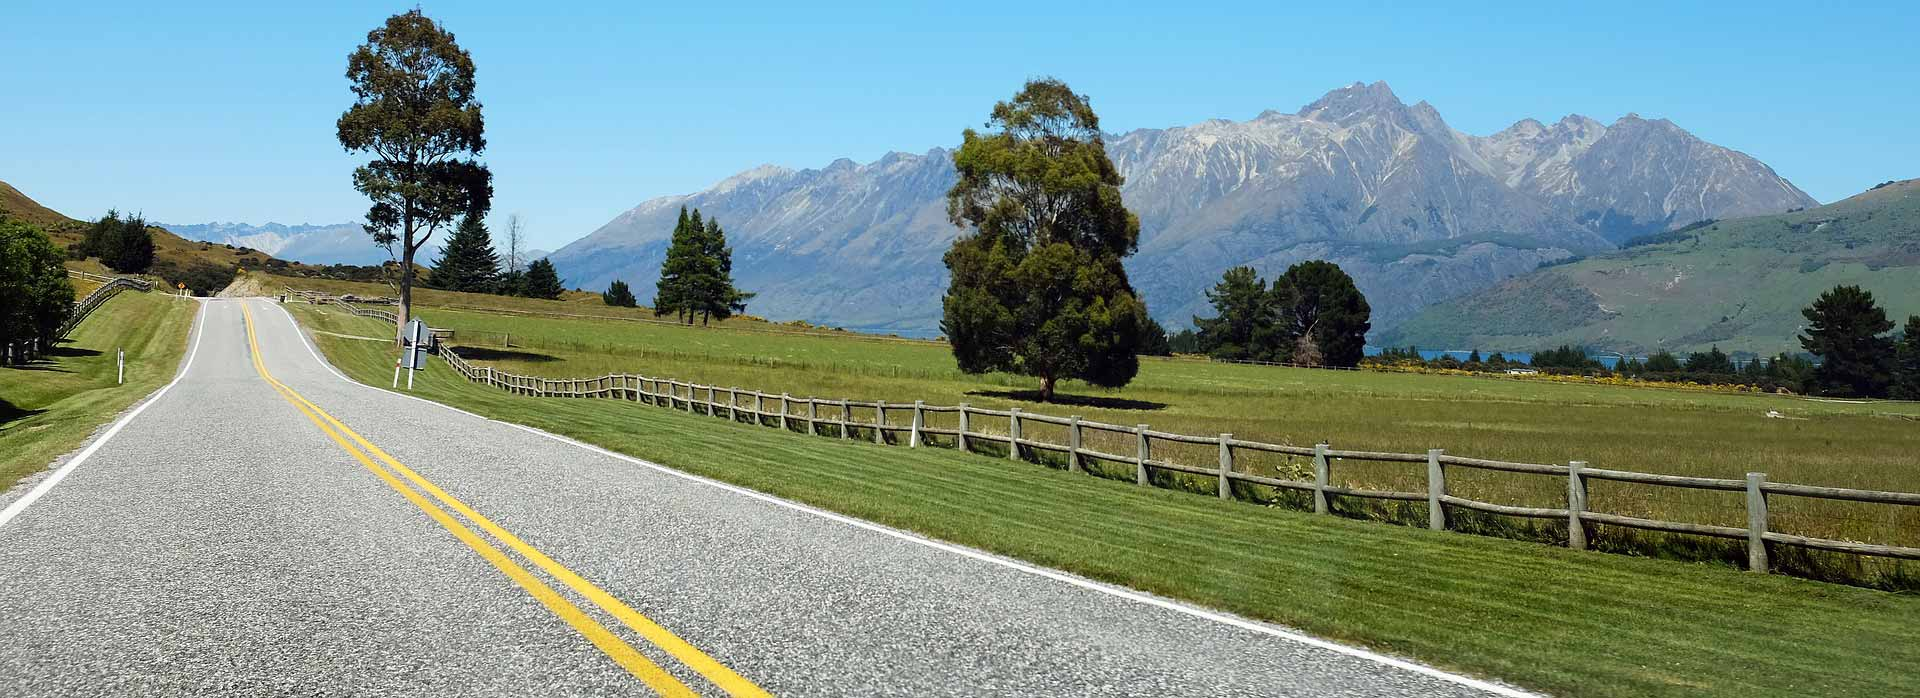 New Zealand country road with farm fences and mountains